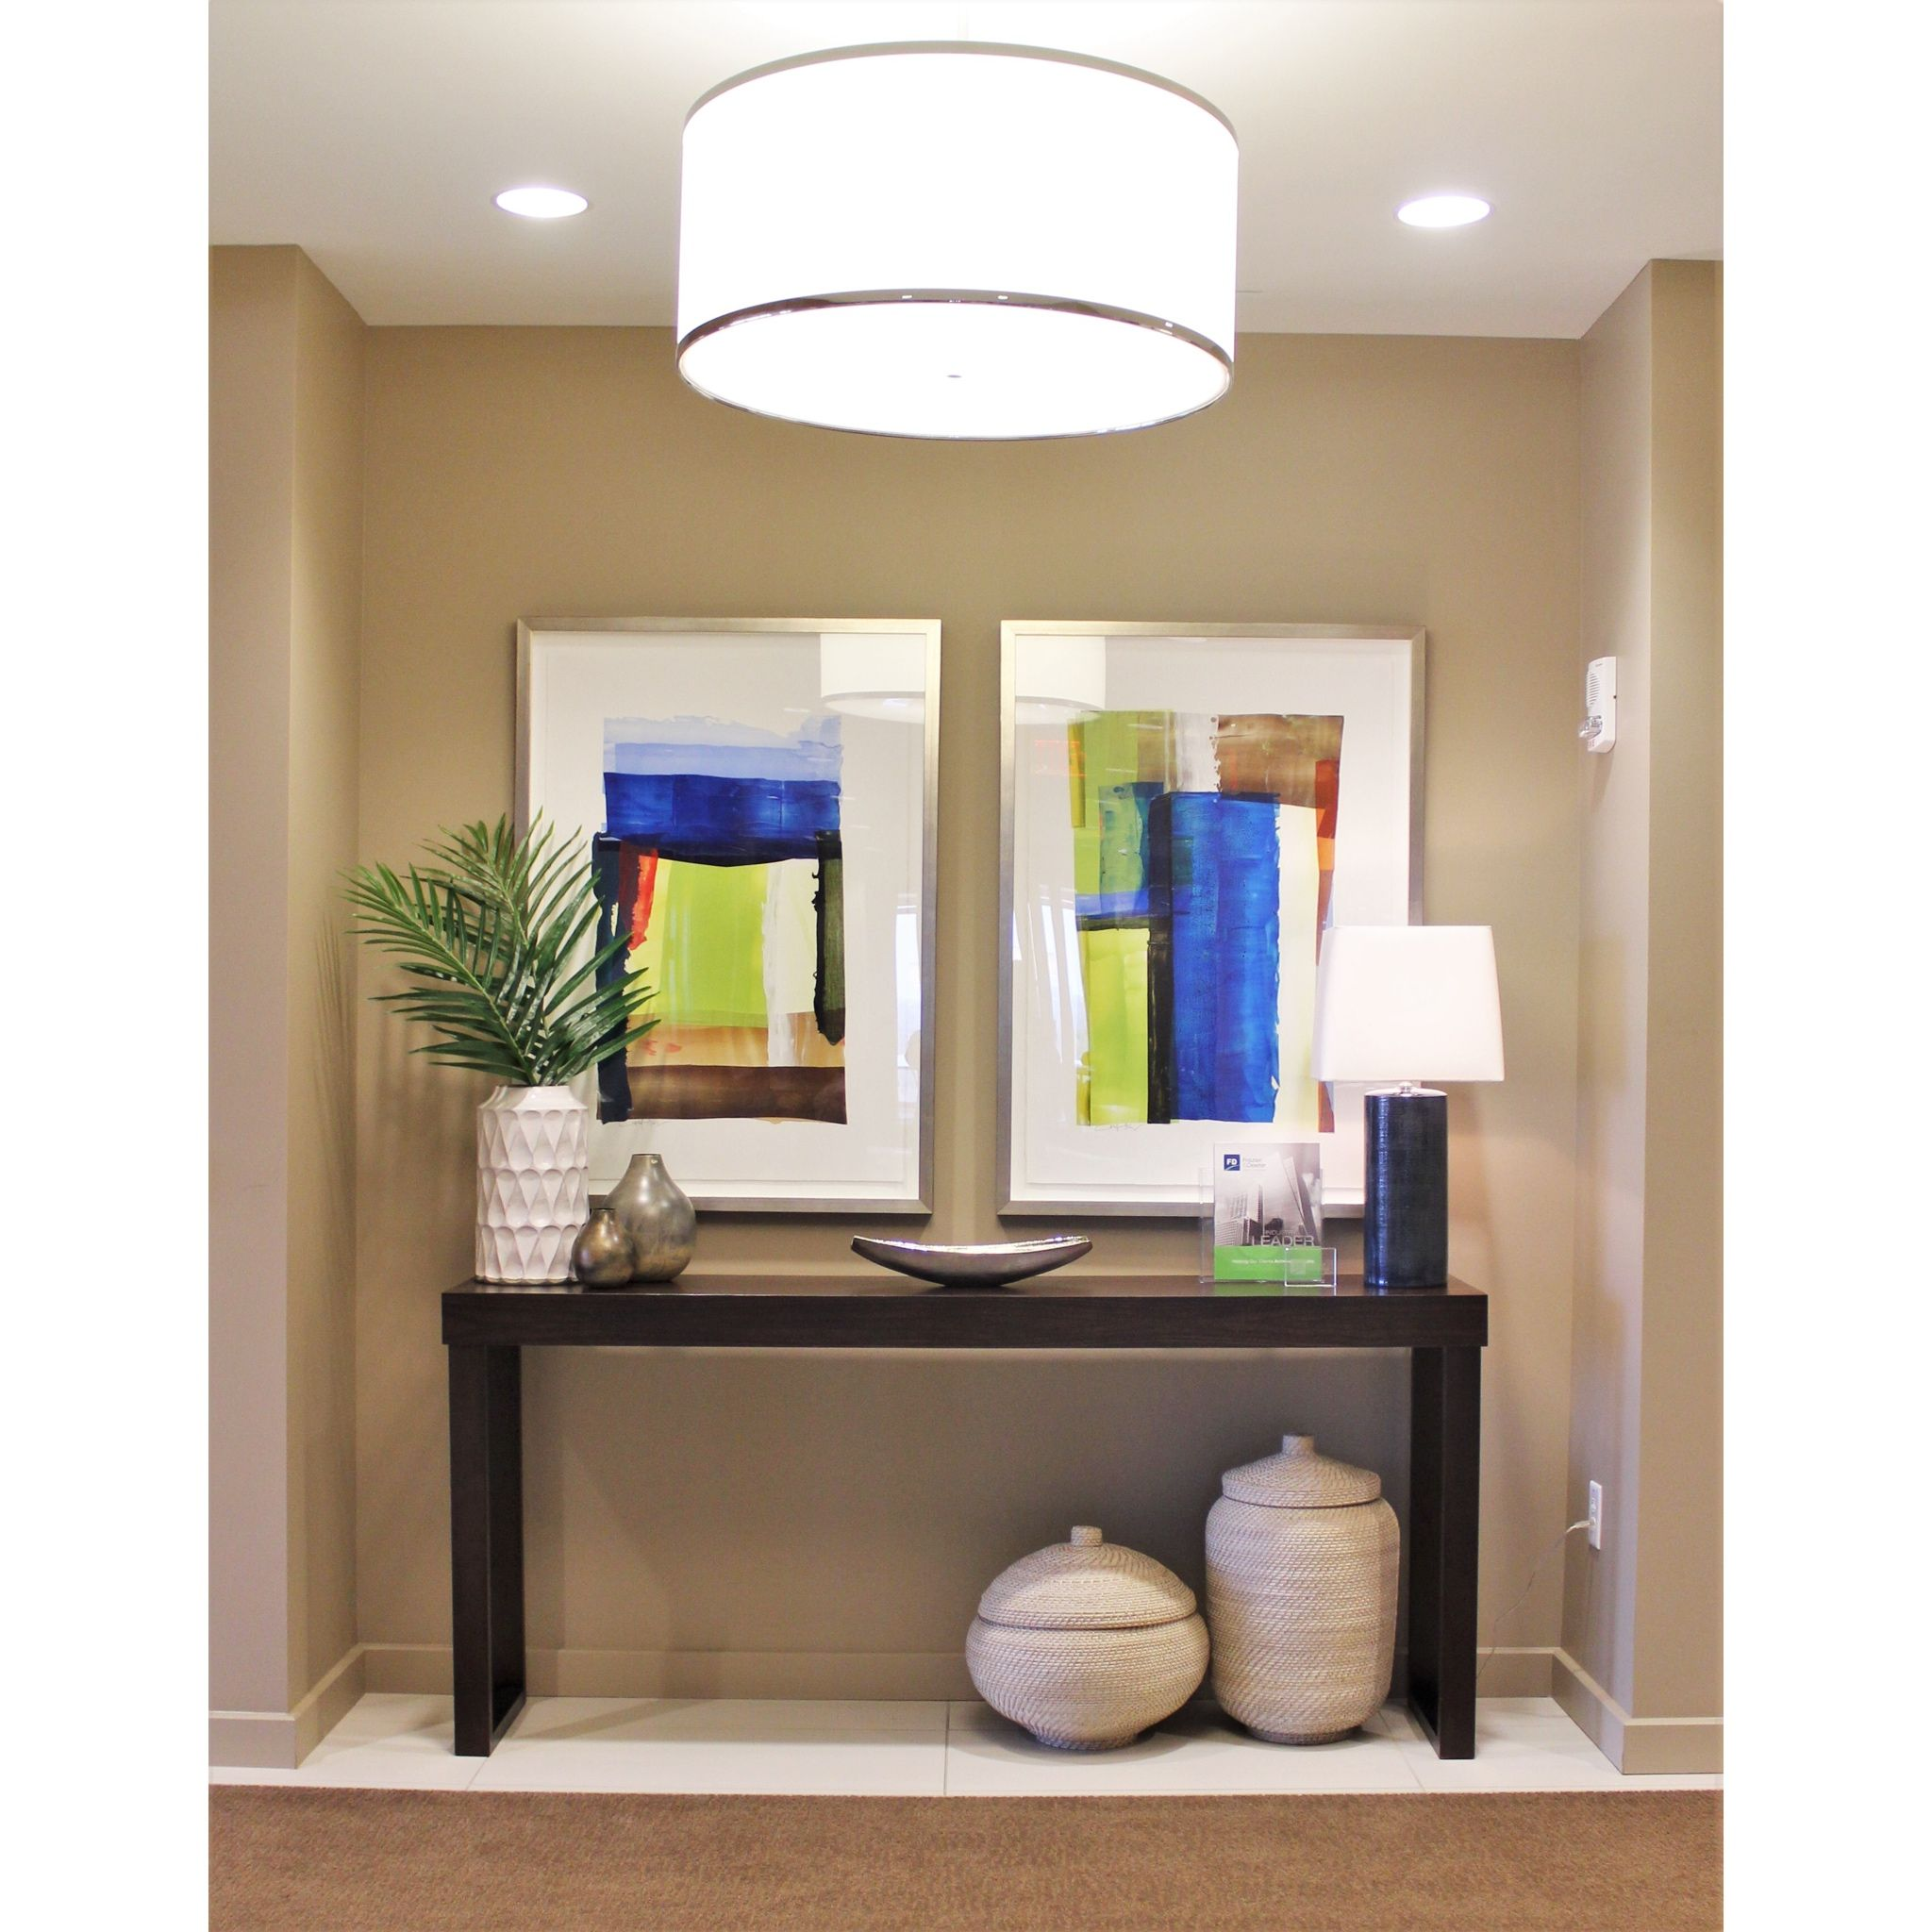 Office Console Table: Contemporary Upscale Elegant Office Lobby Decor Design